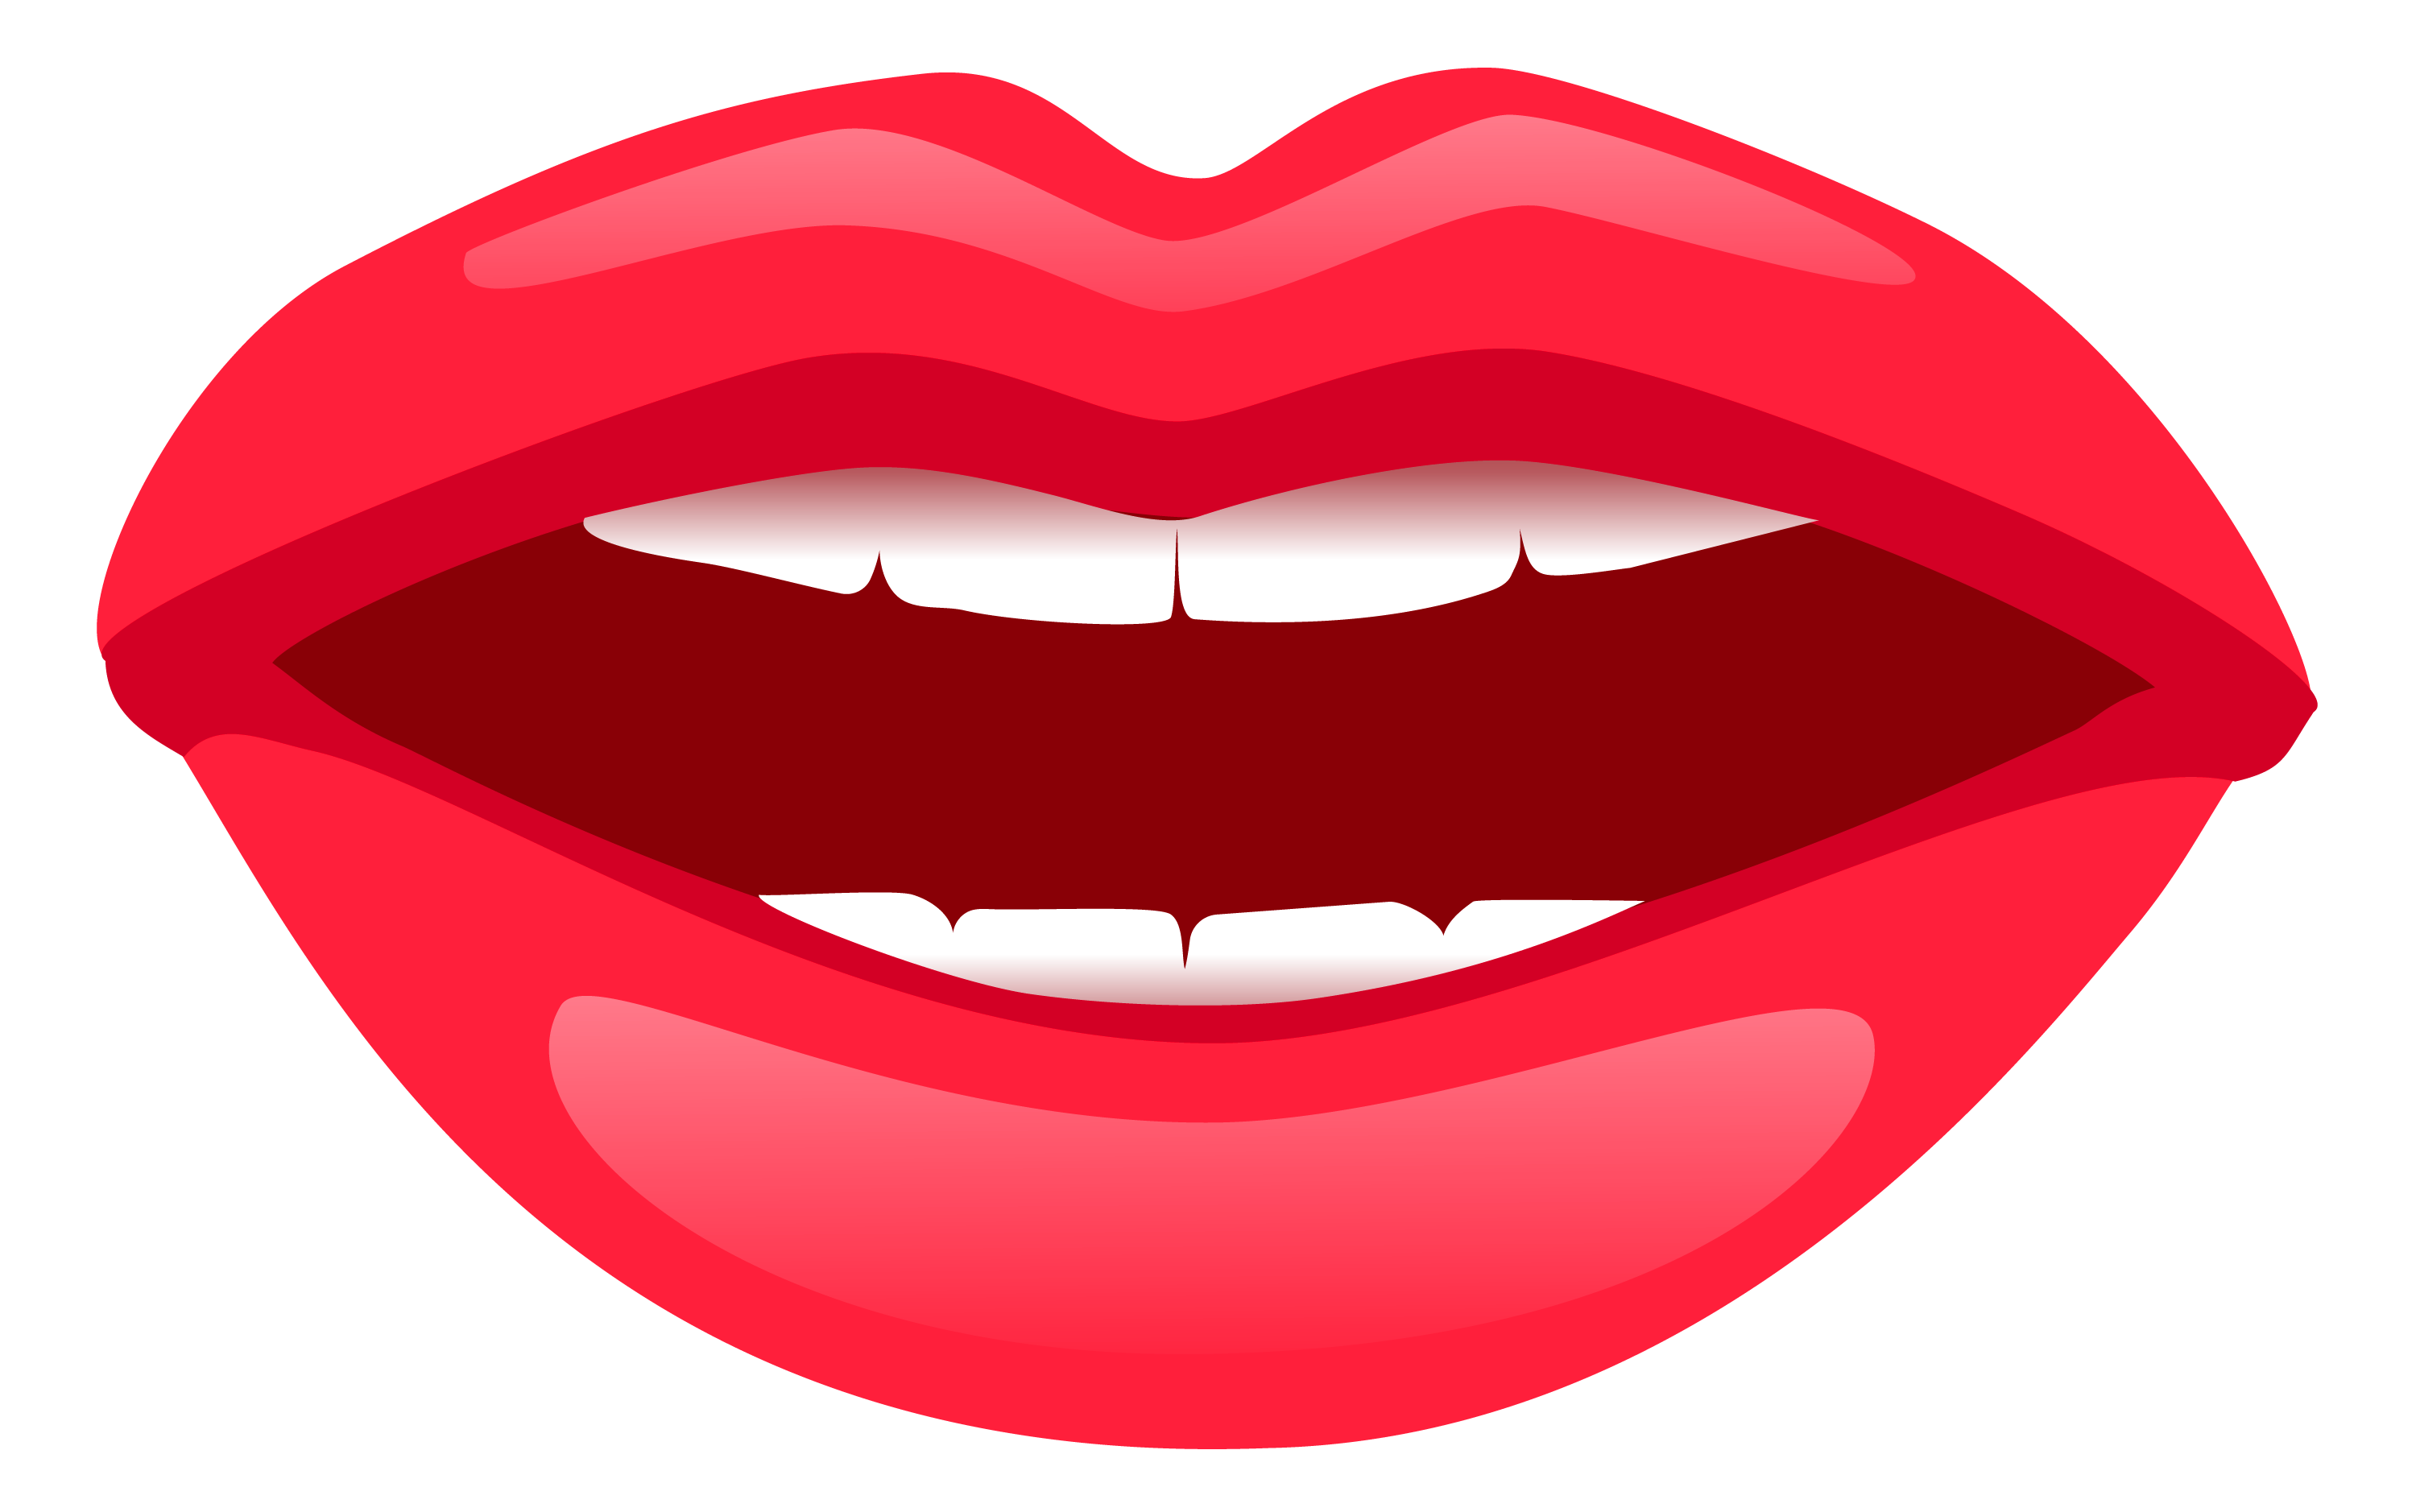 Mouth PNG